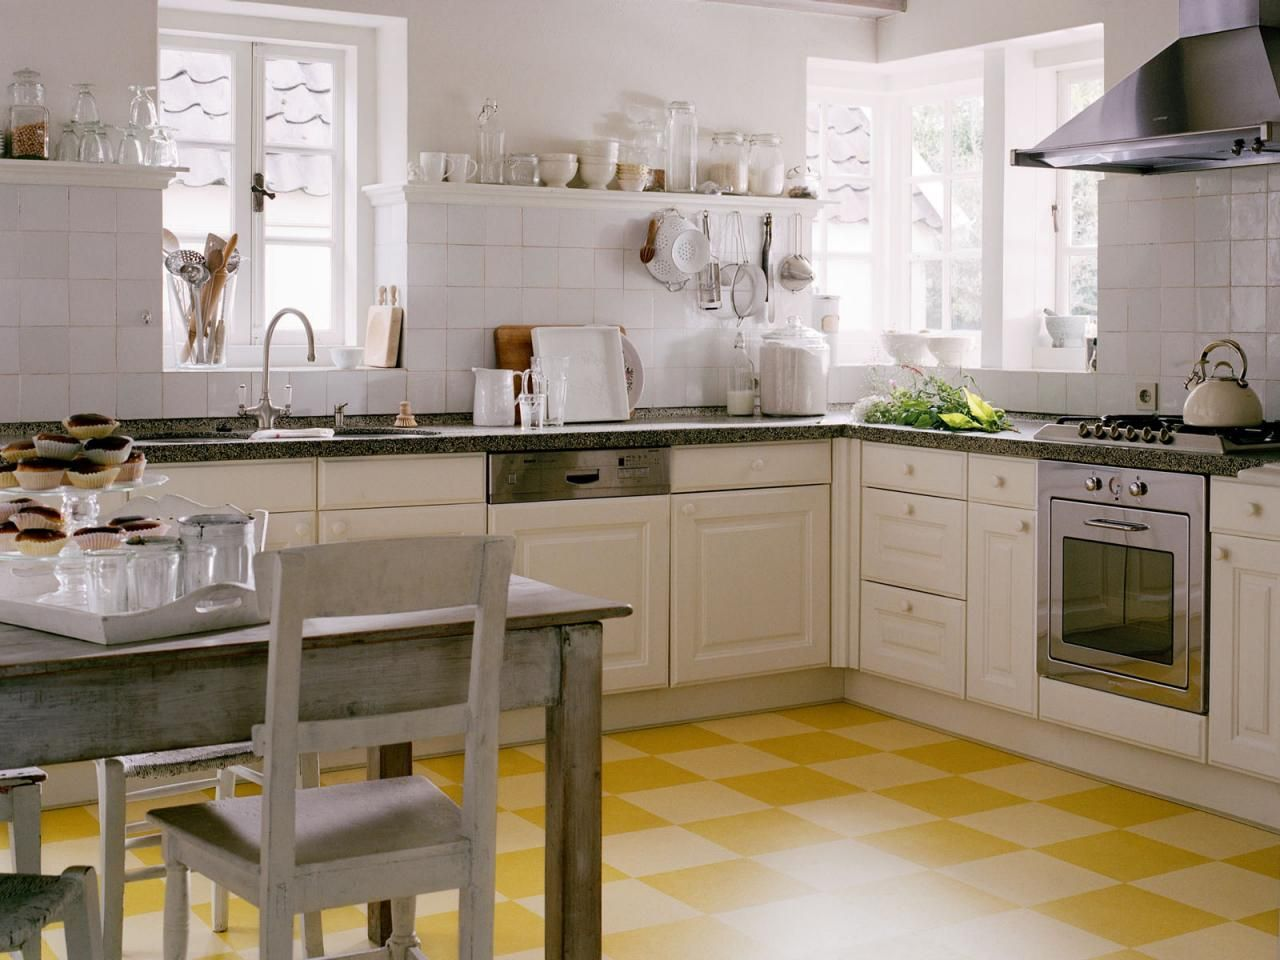 Checkerboard Kitchen Floor 17 Best Ideas About Linoleum Kitchen Floors On Pinterest Paint